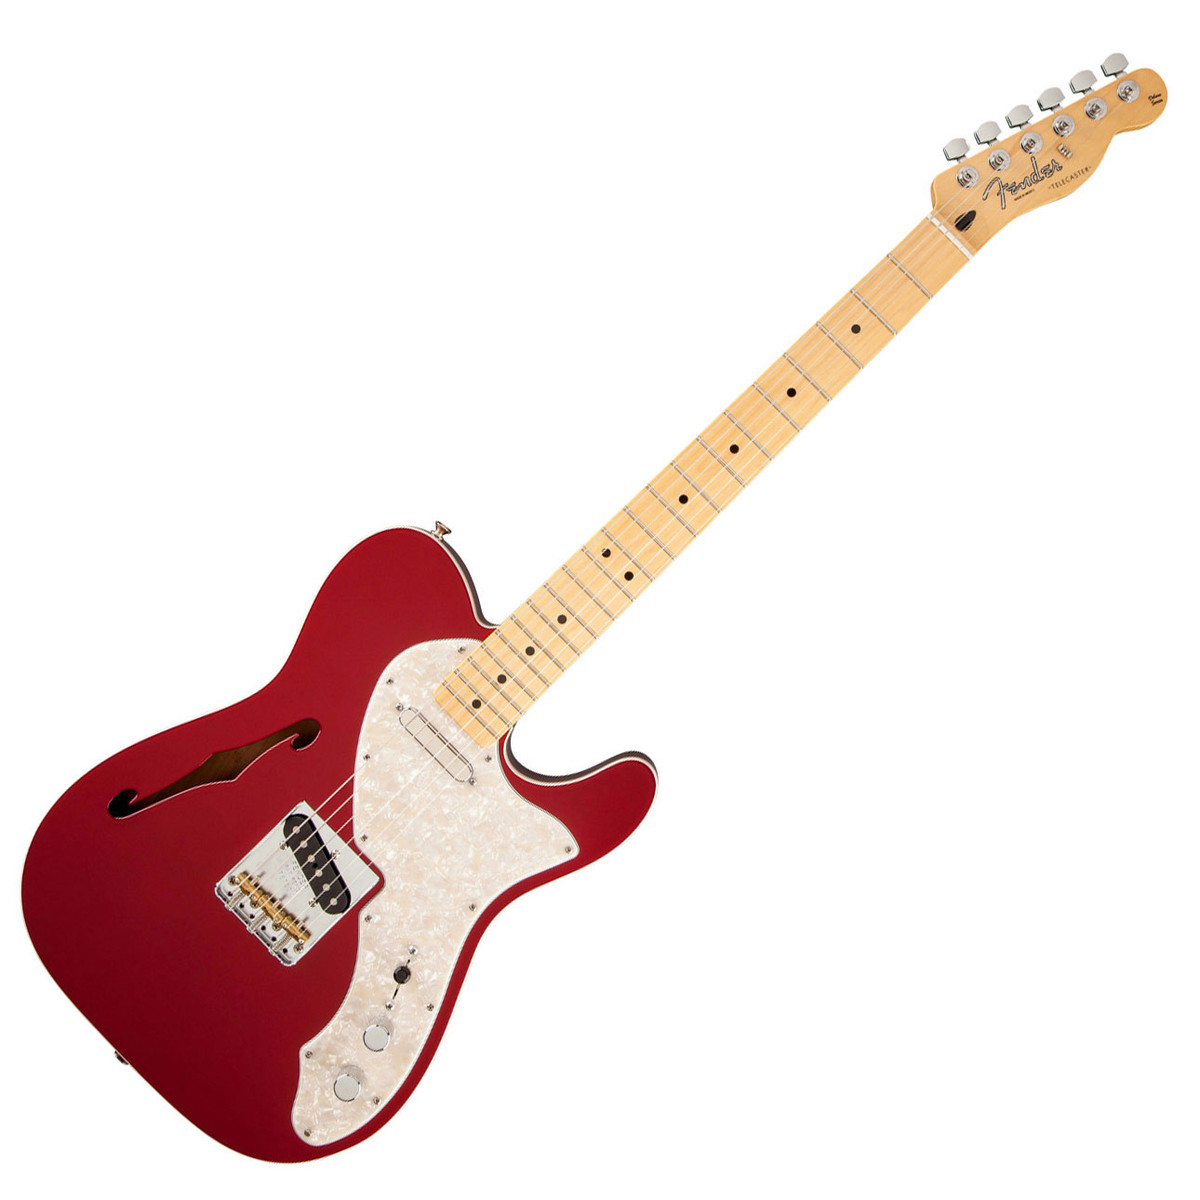 fender fsr deluxe telecaster thinline mn candy apple red at gear4music. Black Bedroom Furniture Sets. Home Design Ideas